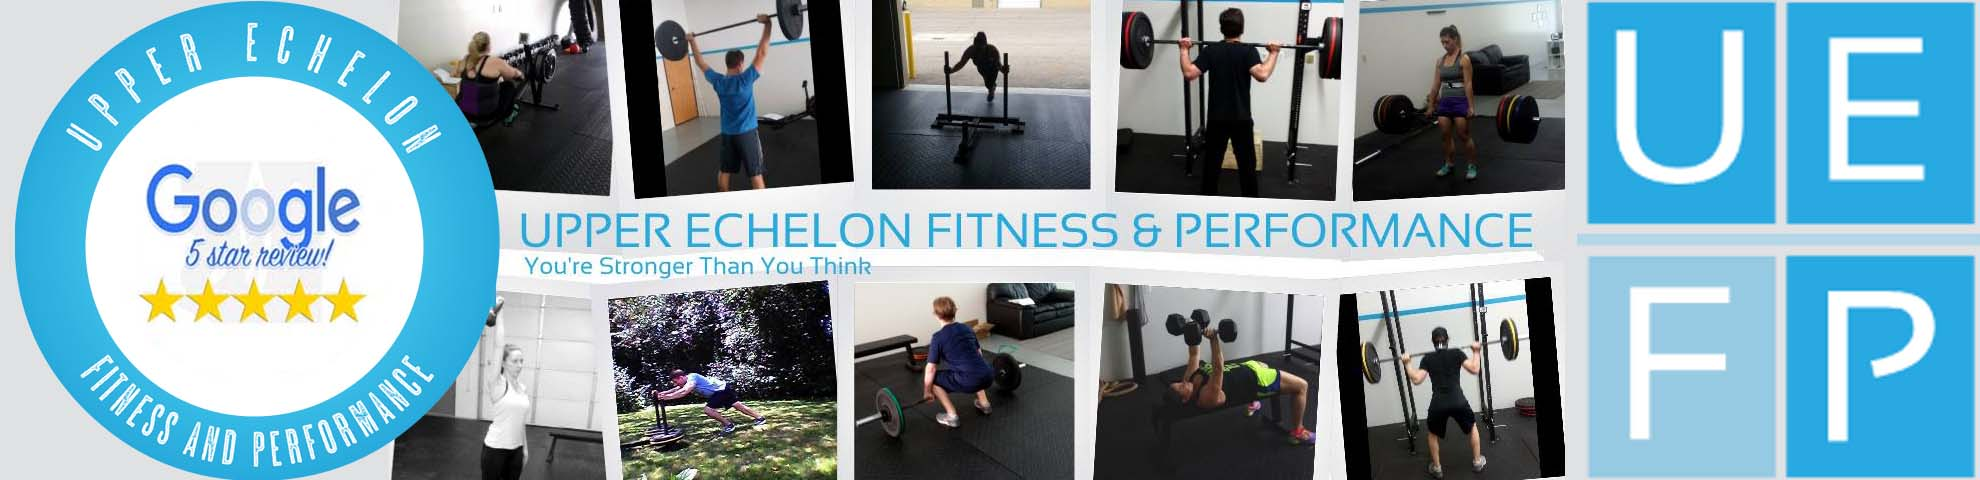 Personal Training Studio Near Me, Commerce Twp, Northville Michigan